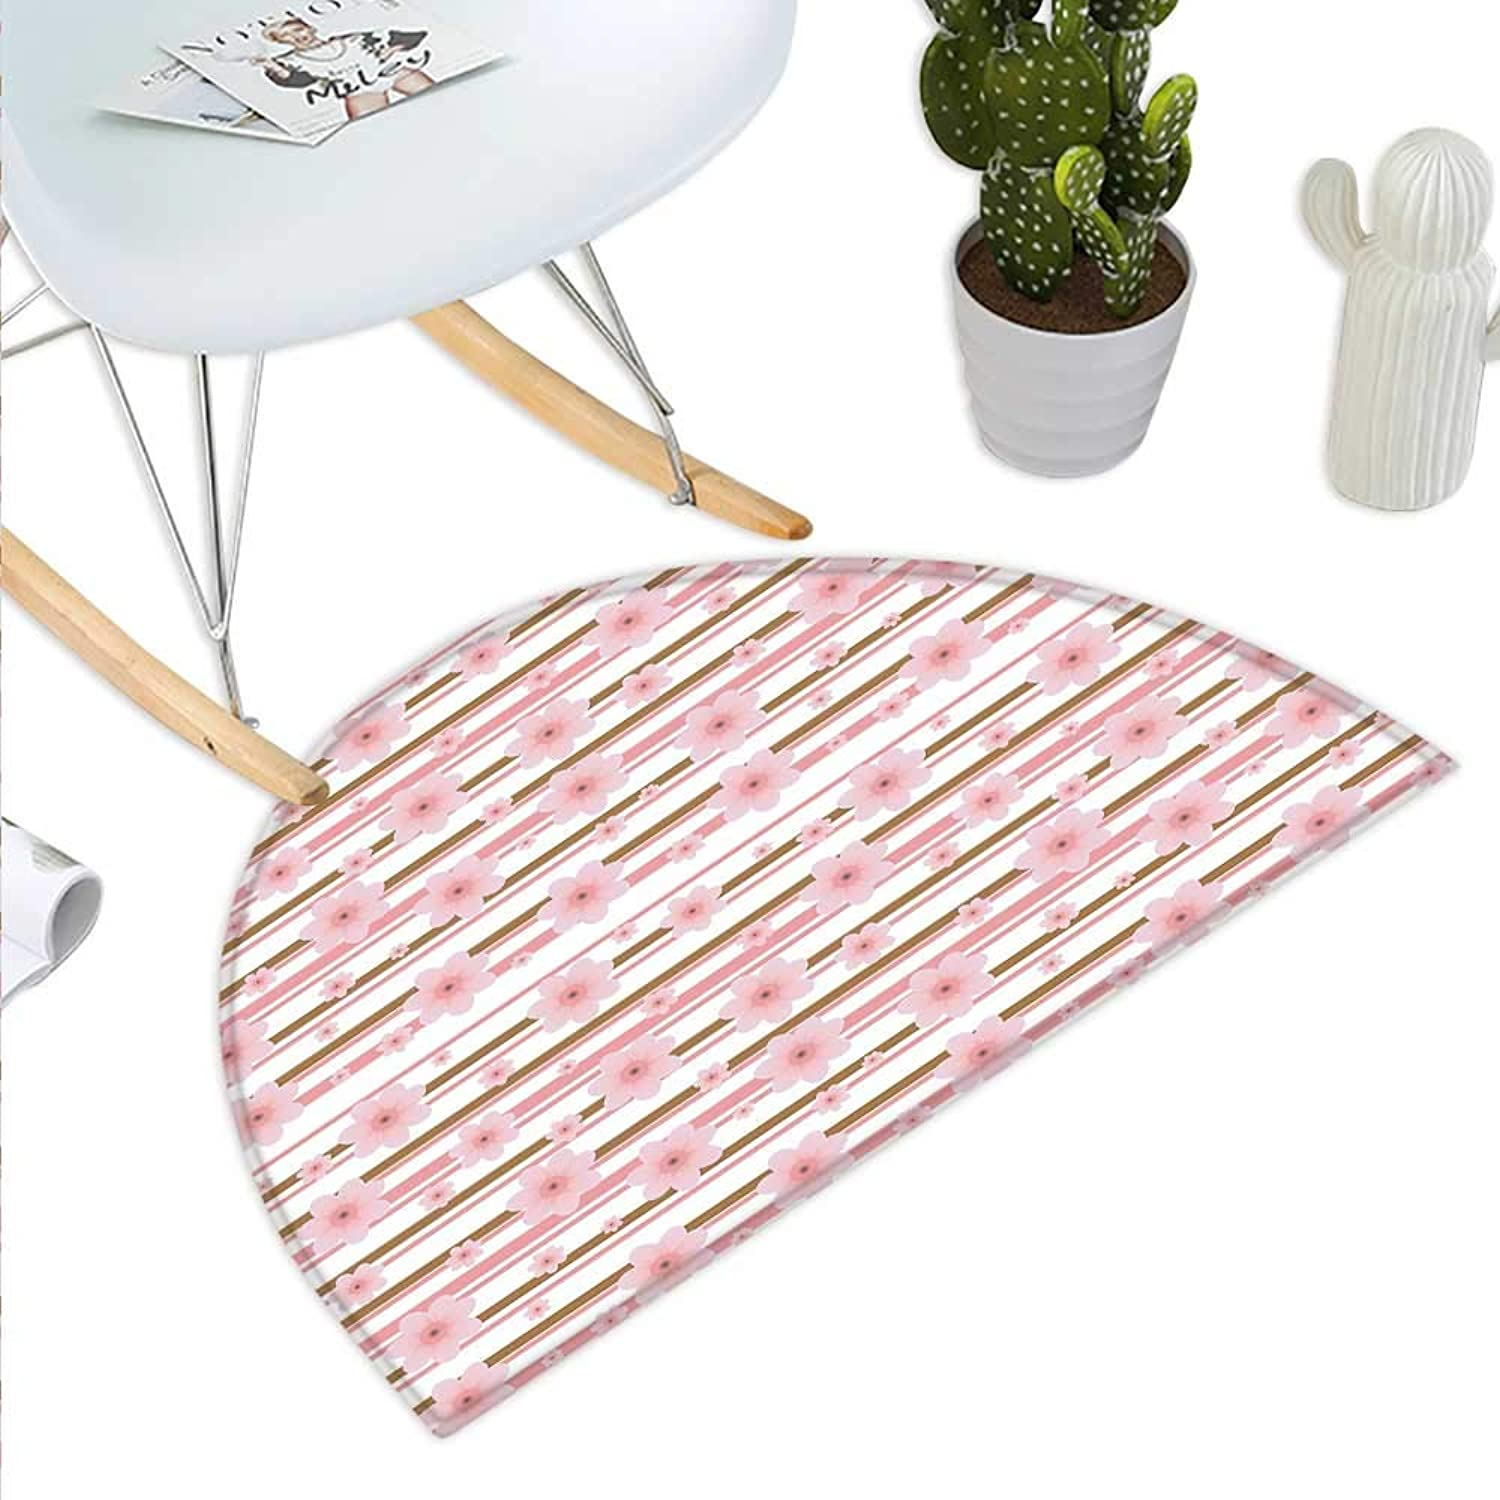 Peach Semicircle Doormat Cherry Buds in Many Shapes Sizes with Horizontal Lines Blooming Nature Theme Halfmoon doormats H 39.3  xD 59  Pale Pink Caramel